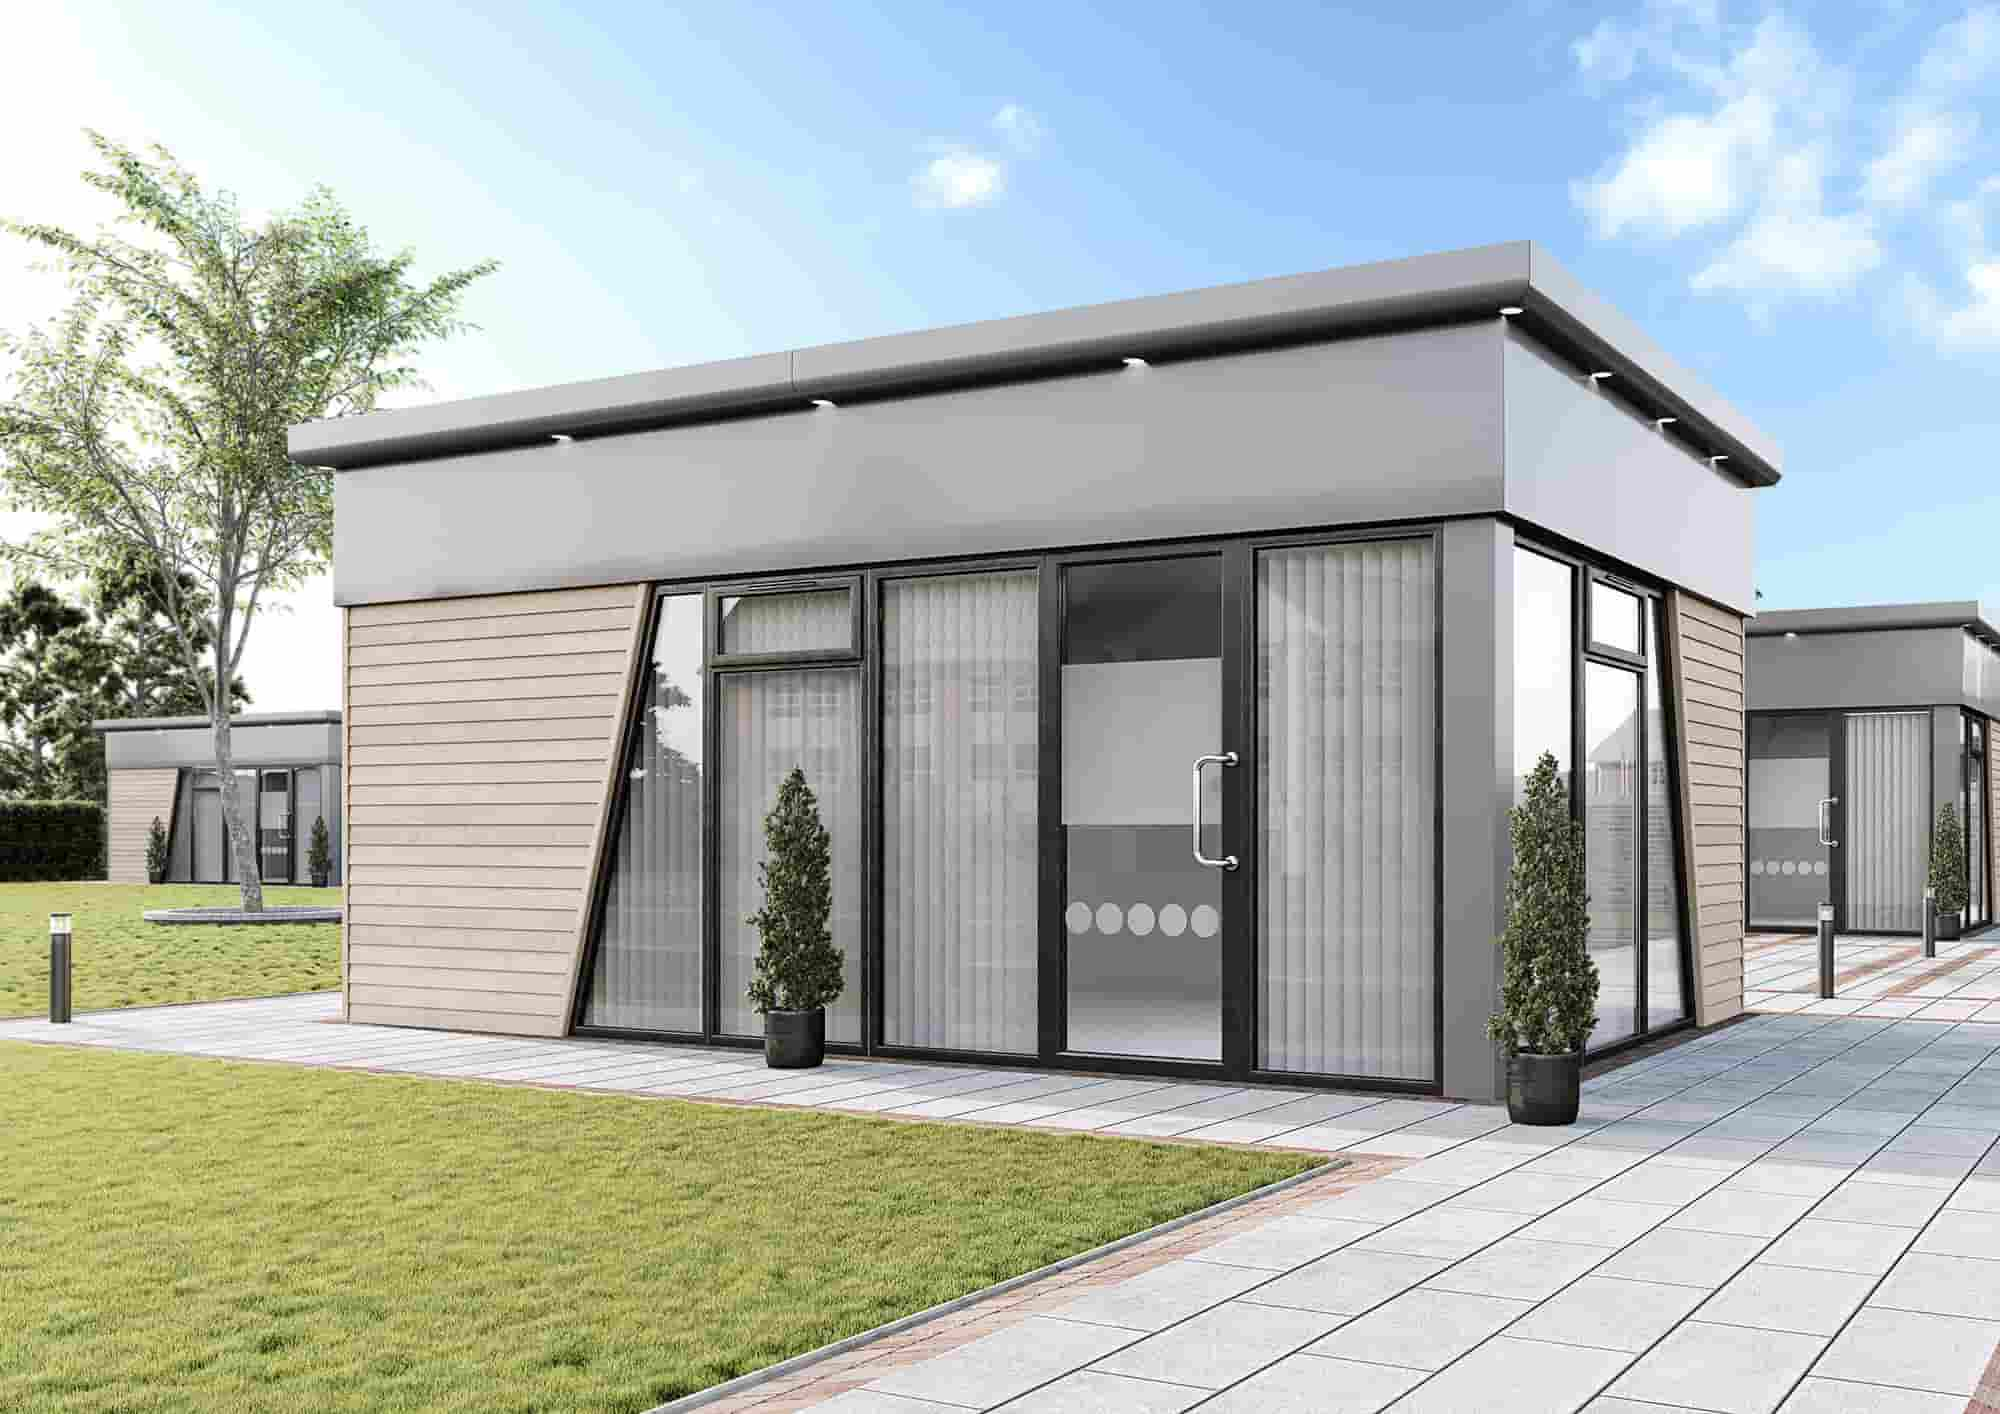 At KES Group, our SmartBuild modular buildings provide you with the opportunity to create a custom-built area, tailored to suit your needs when working from home.